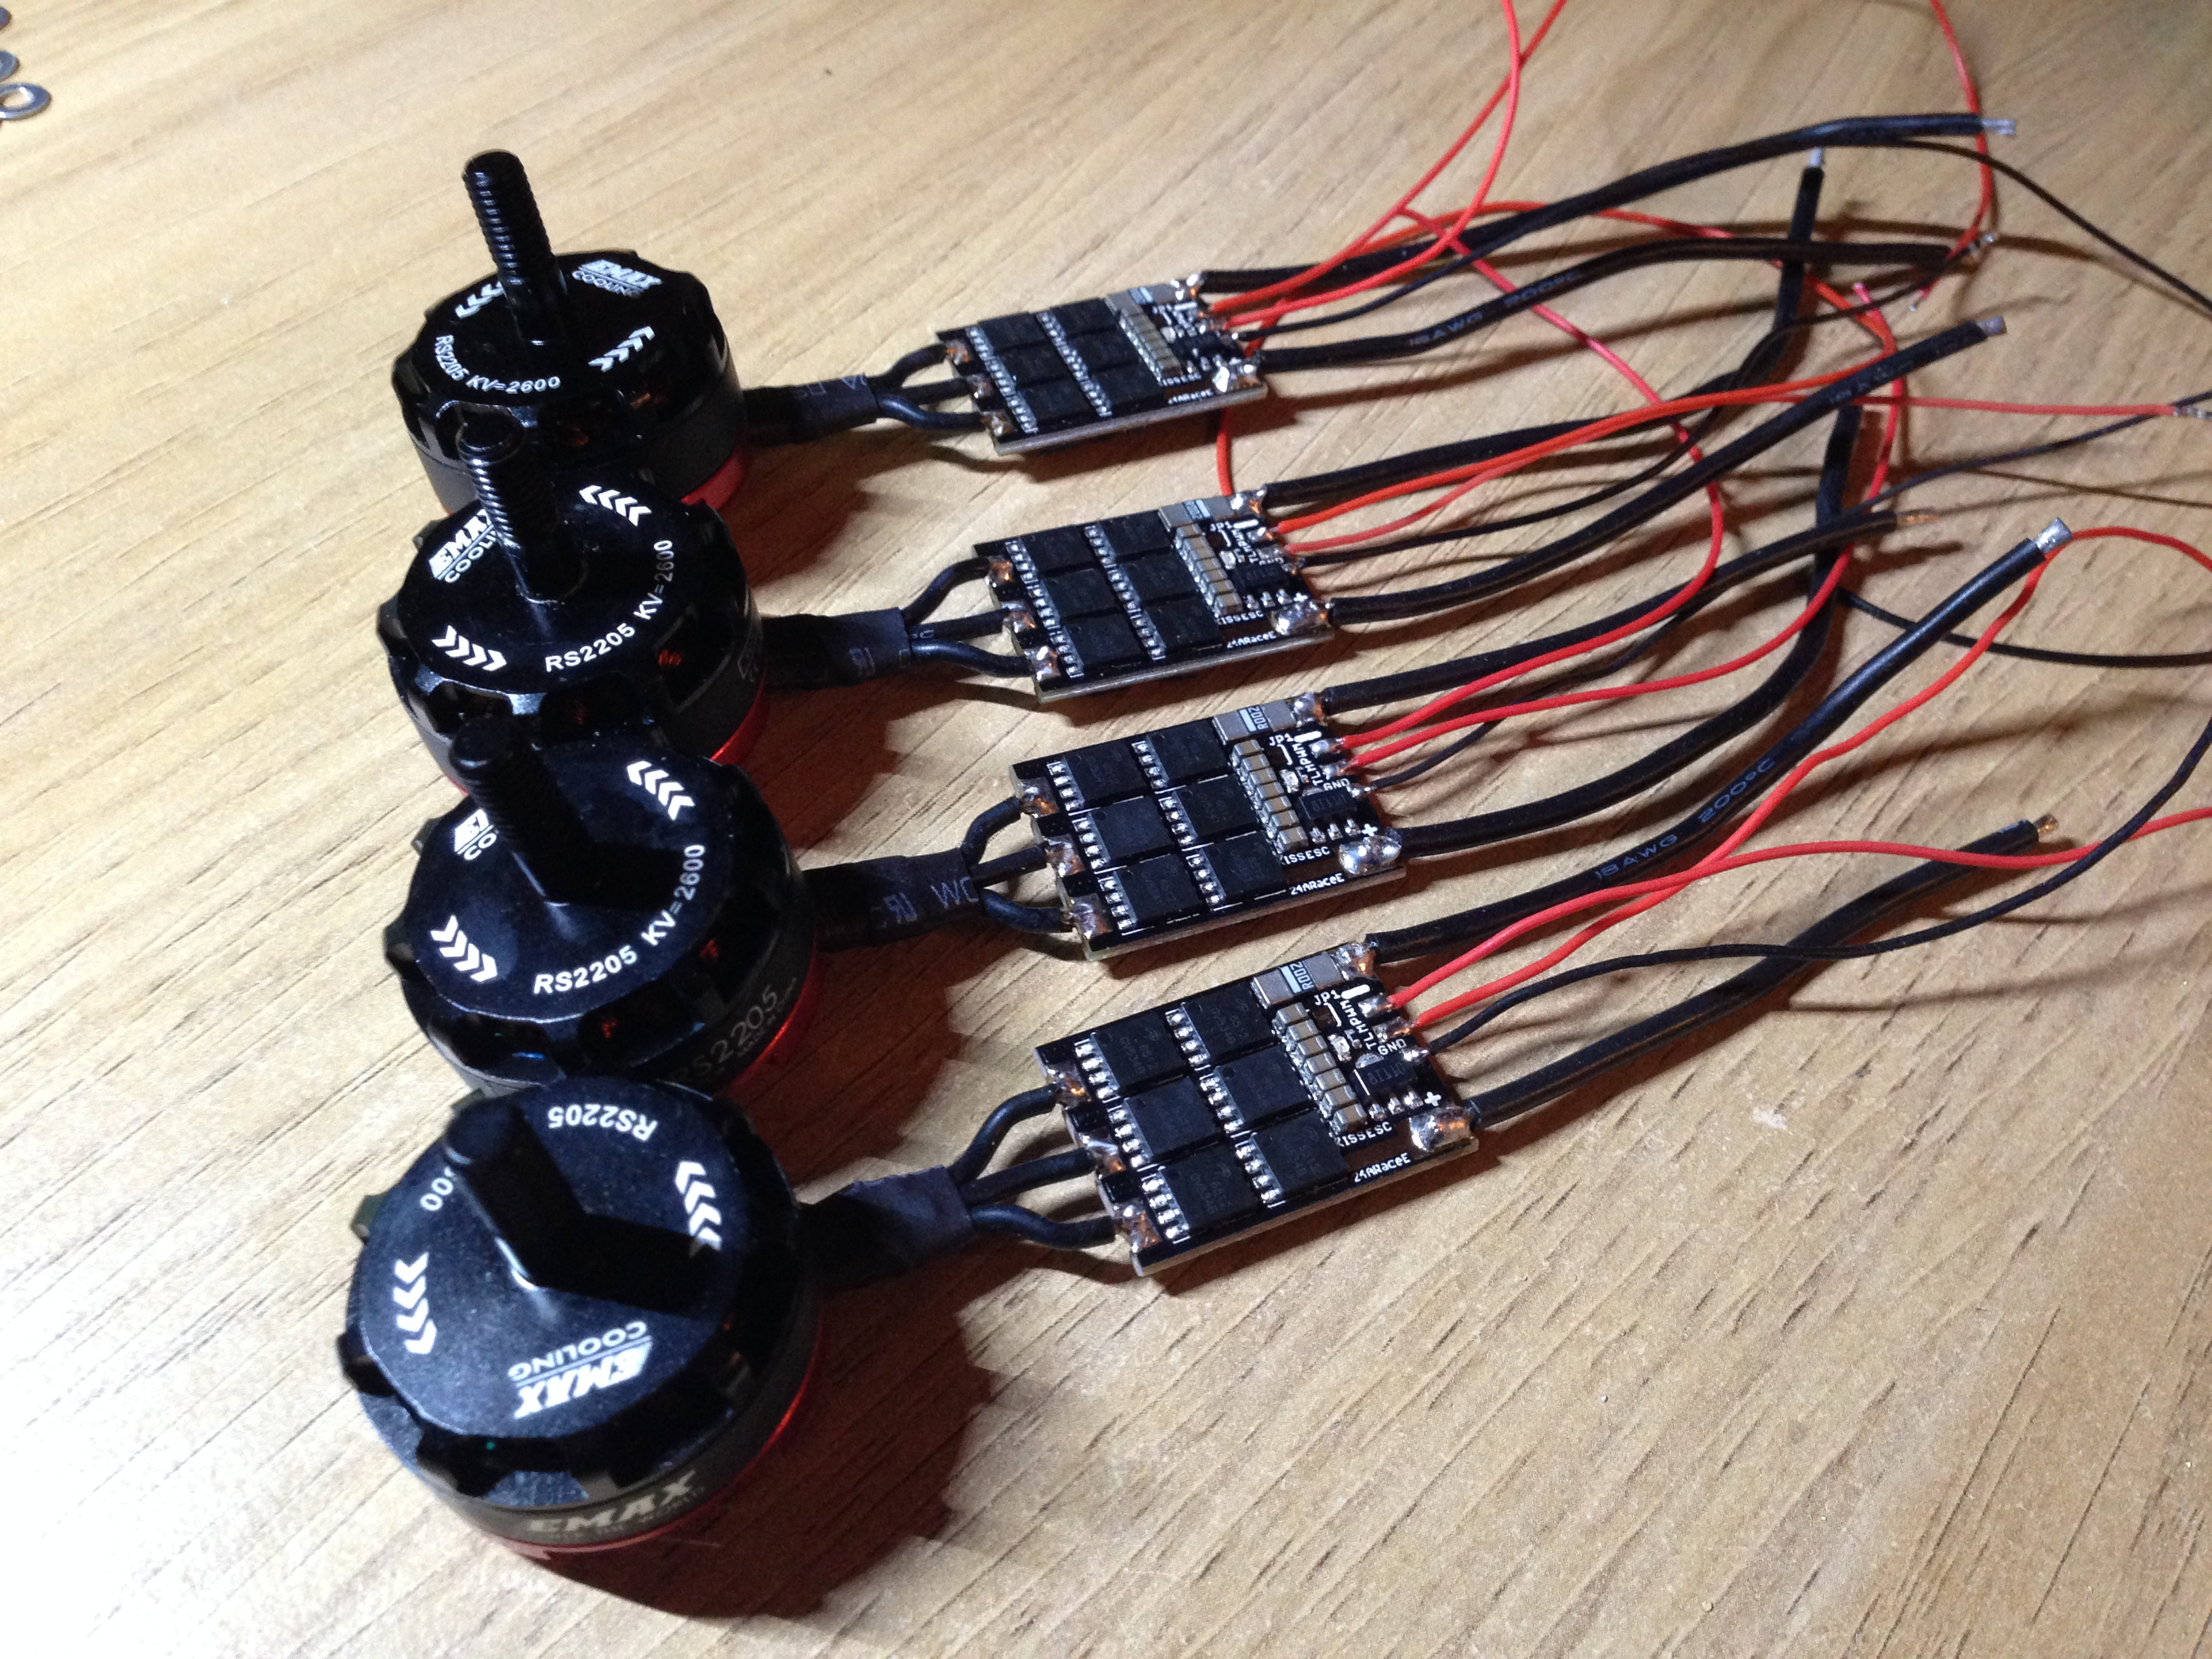 emax rs2205 motors soldered on kiss 24a esc demonrc nox5 210 mini quad frame oscar liang Brushless ESC Wiring-Diagram at crackthecode.co